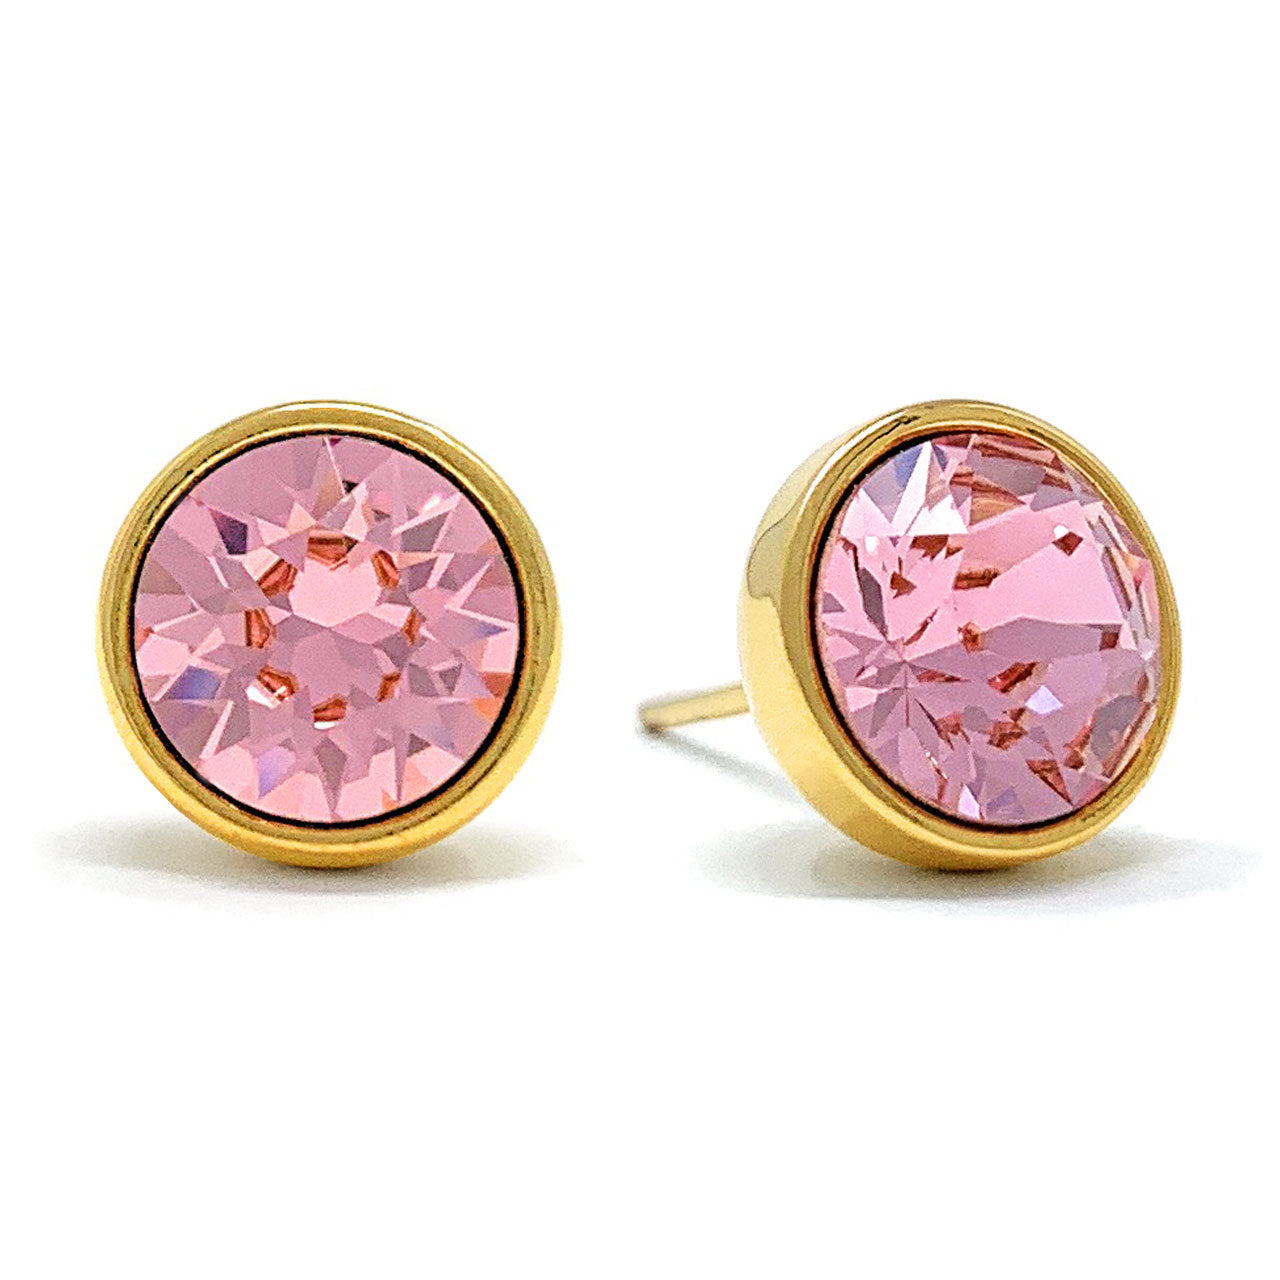 Harley Stud Earrings with Pink Light Rose Round Crystals from Swarovski Gold Plated - Ed Heart